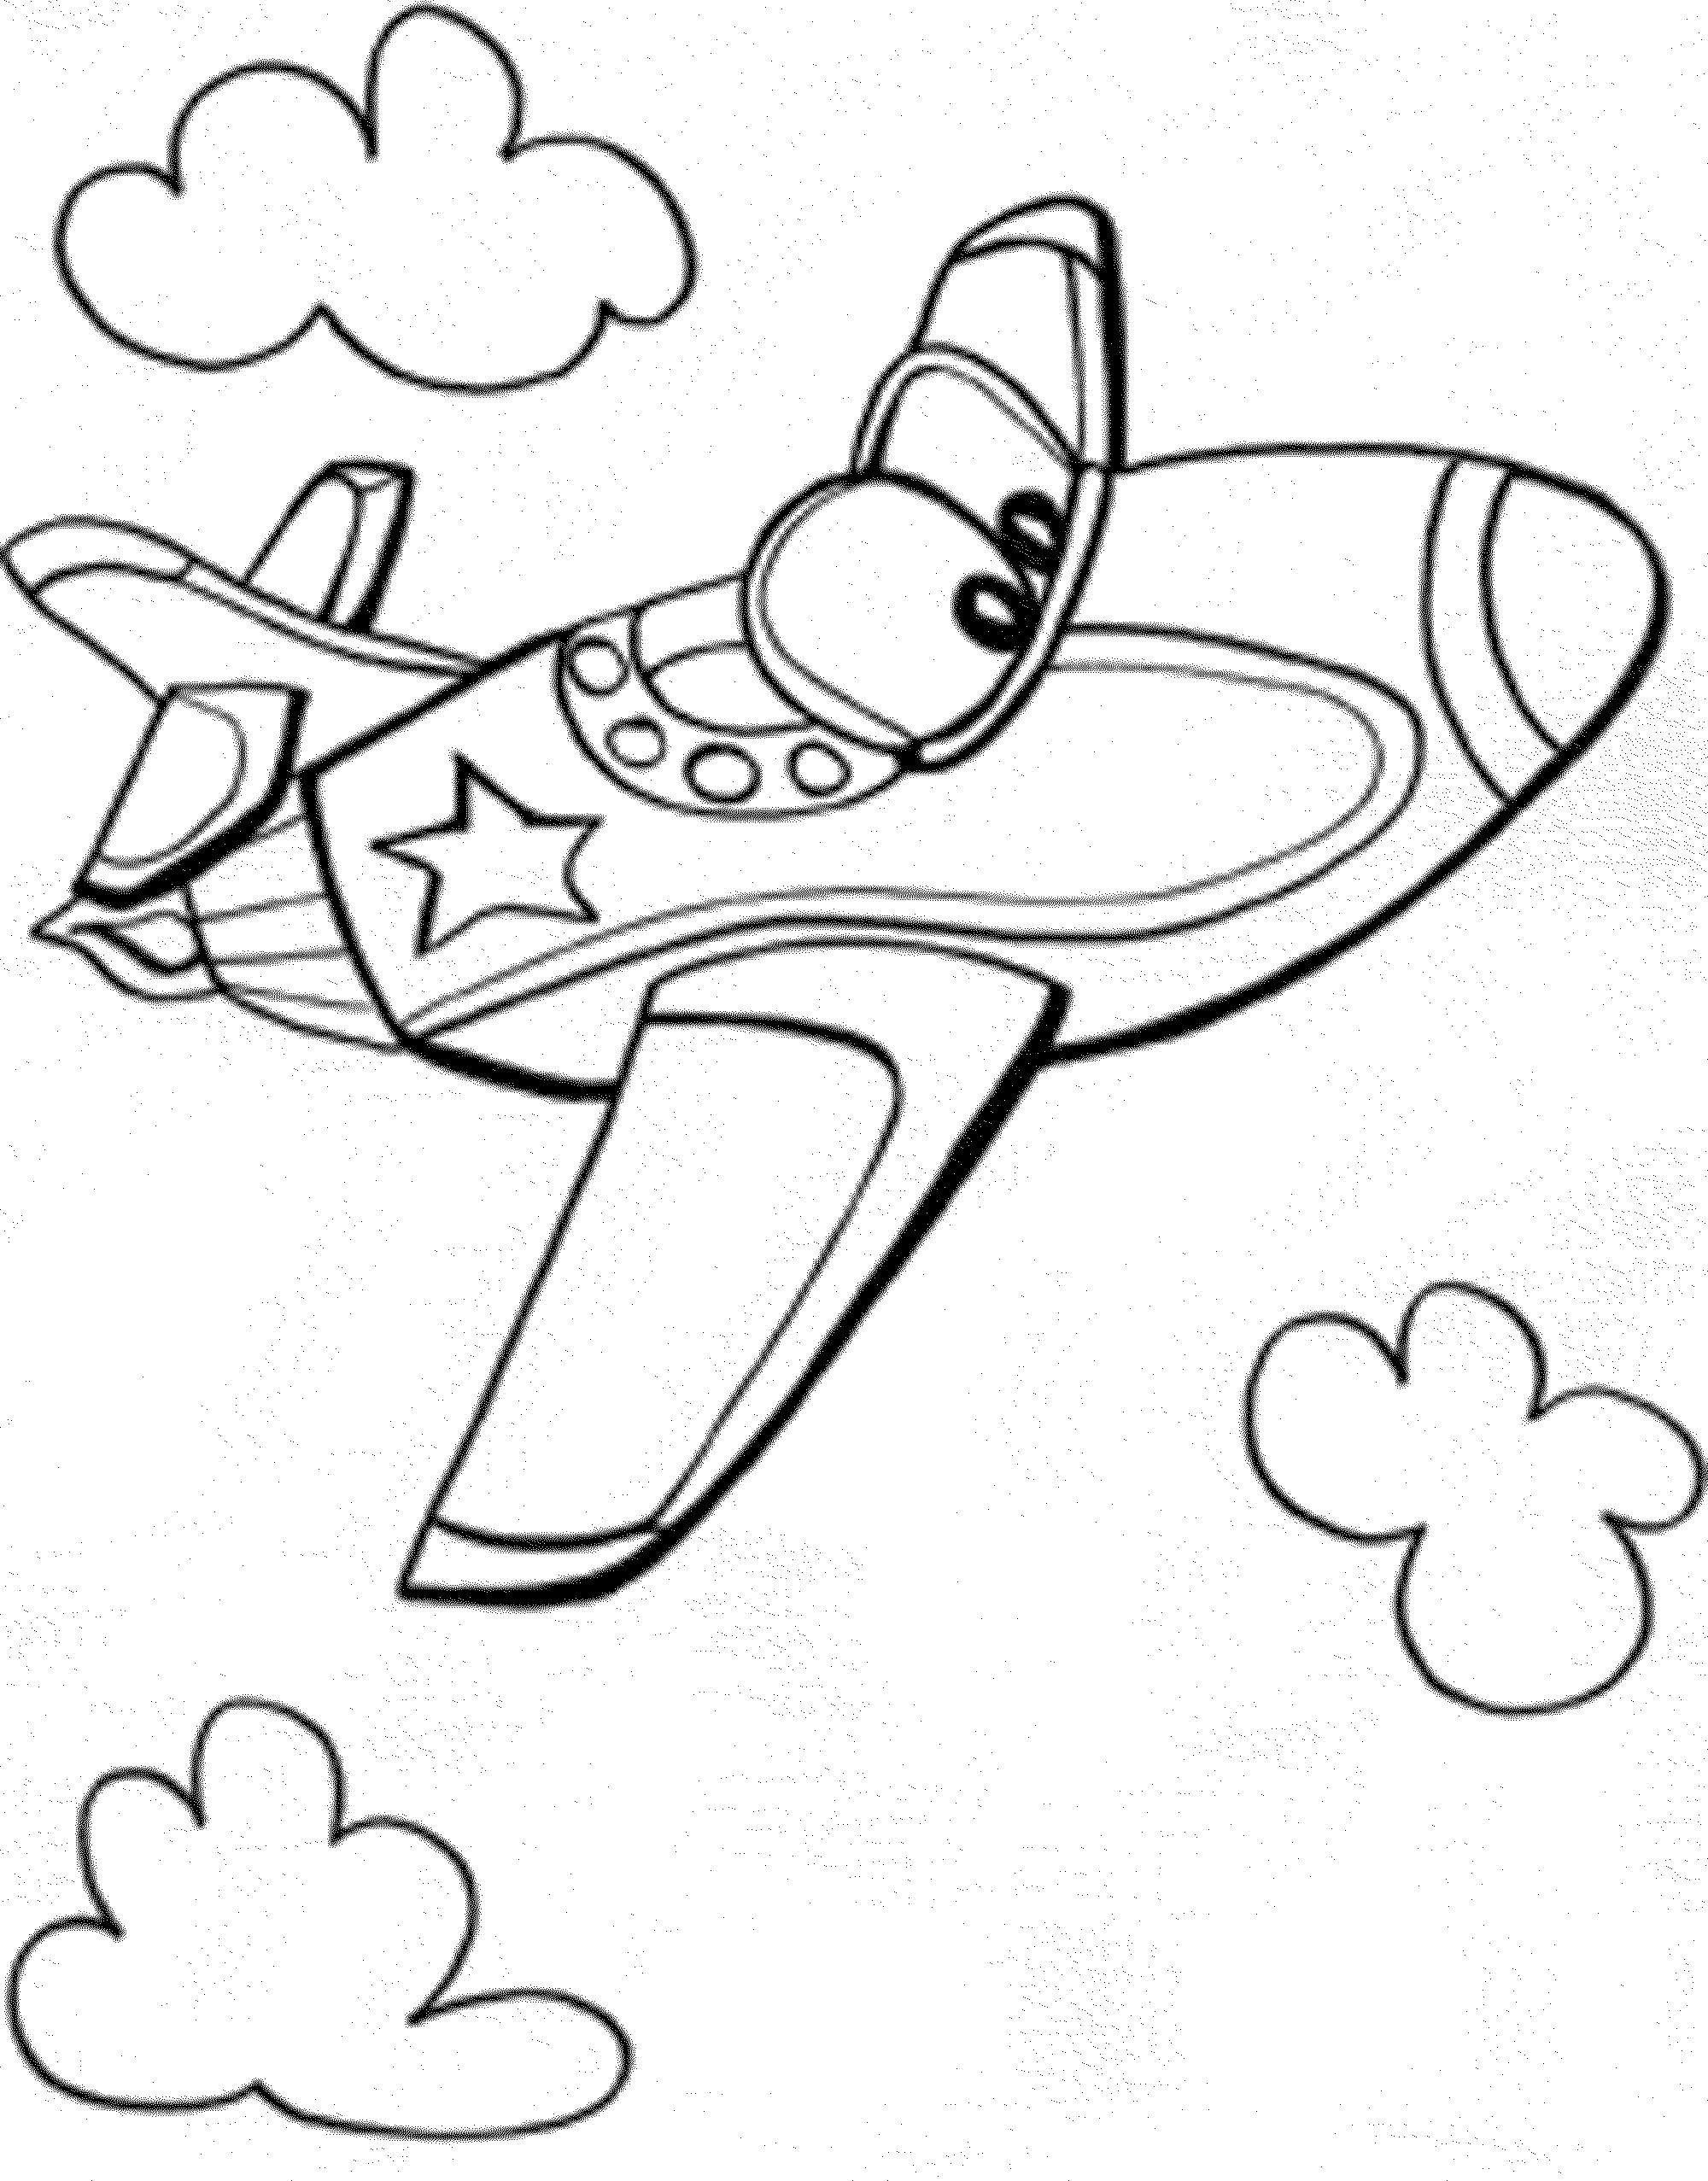 bi plane coloring pages - photo#32